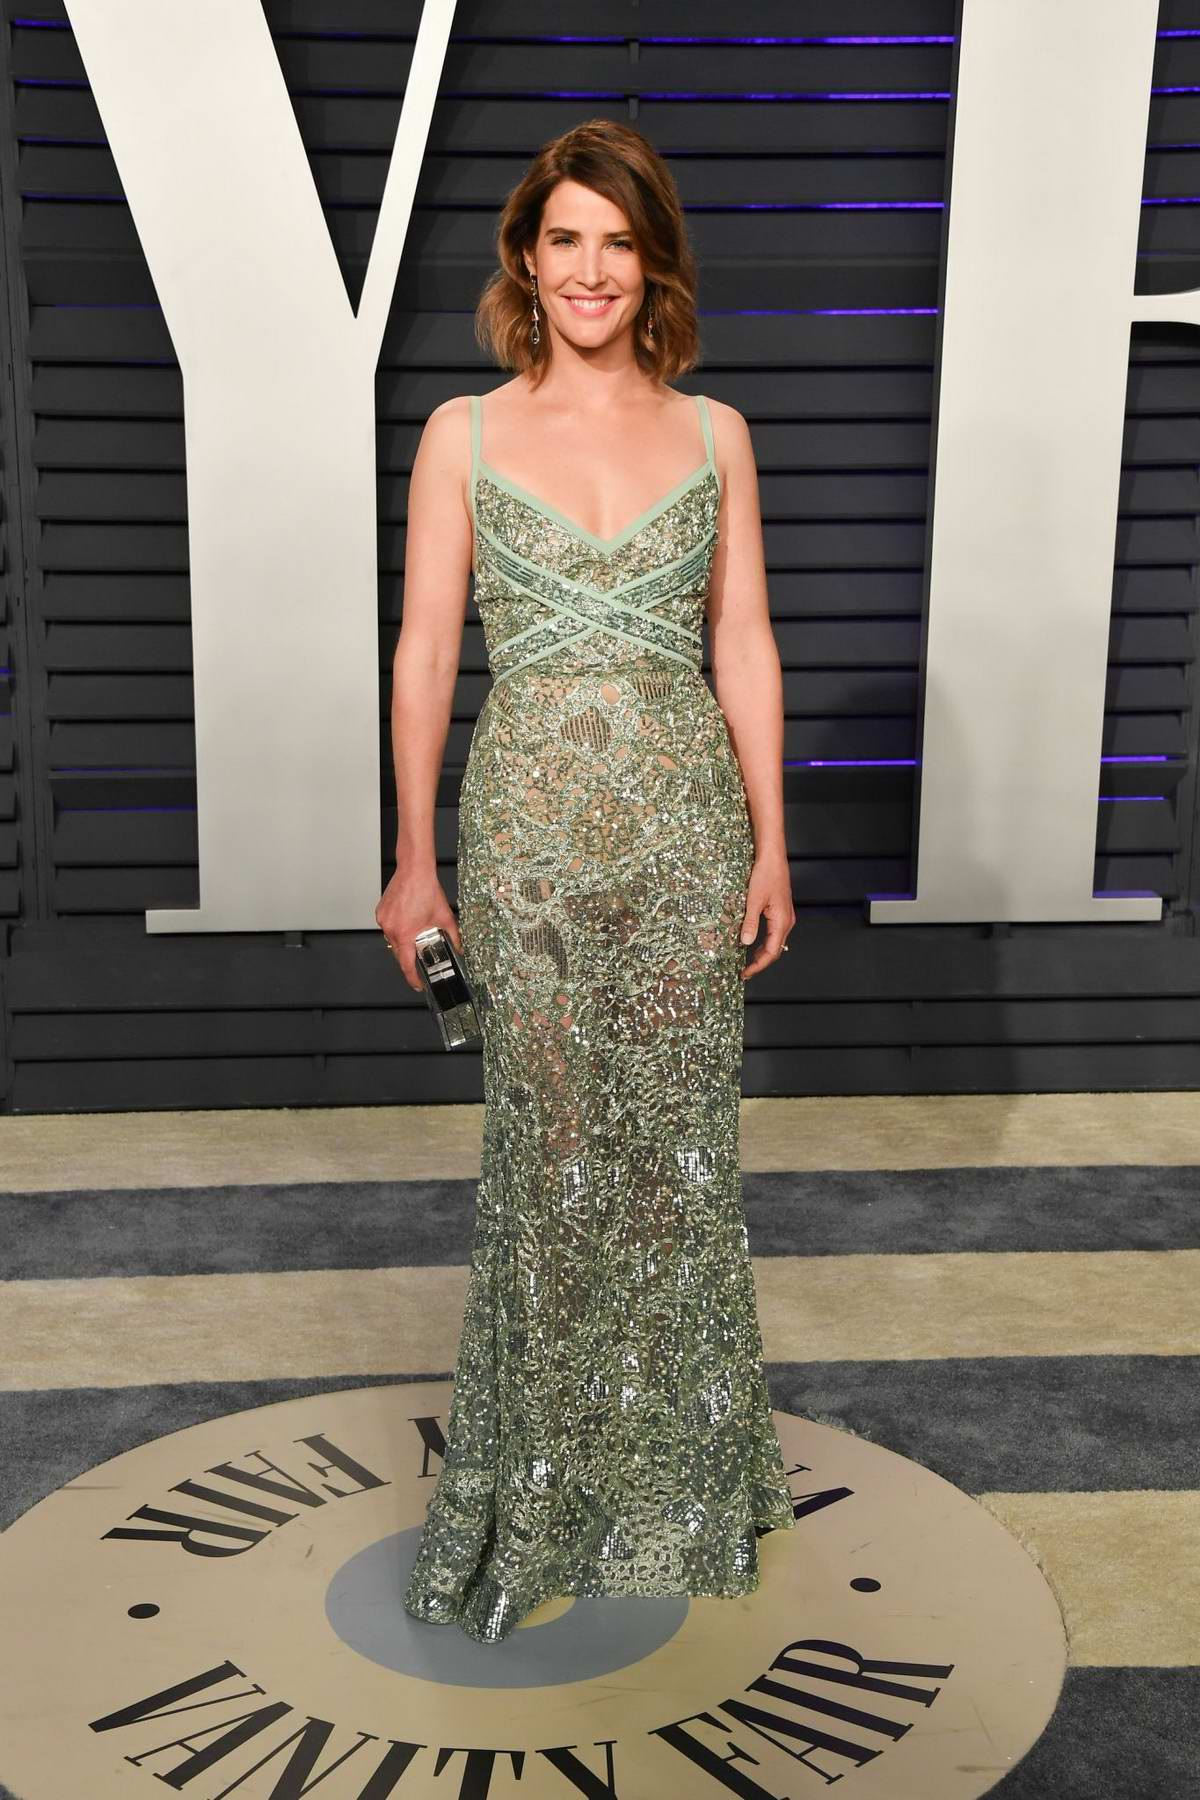 Cobie Smulders attends the Vanity Fair Oscar Party at Wallis Annenberg Center for the Performing Arts in Beverly Hills, California